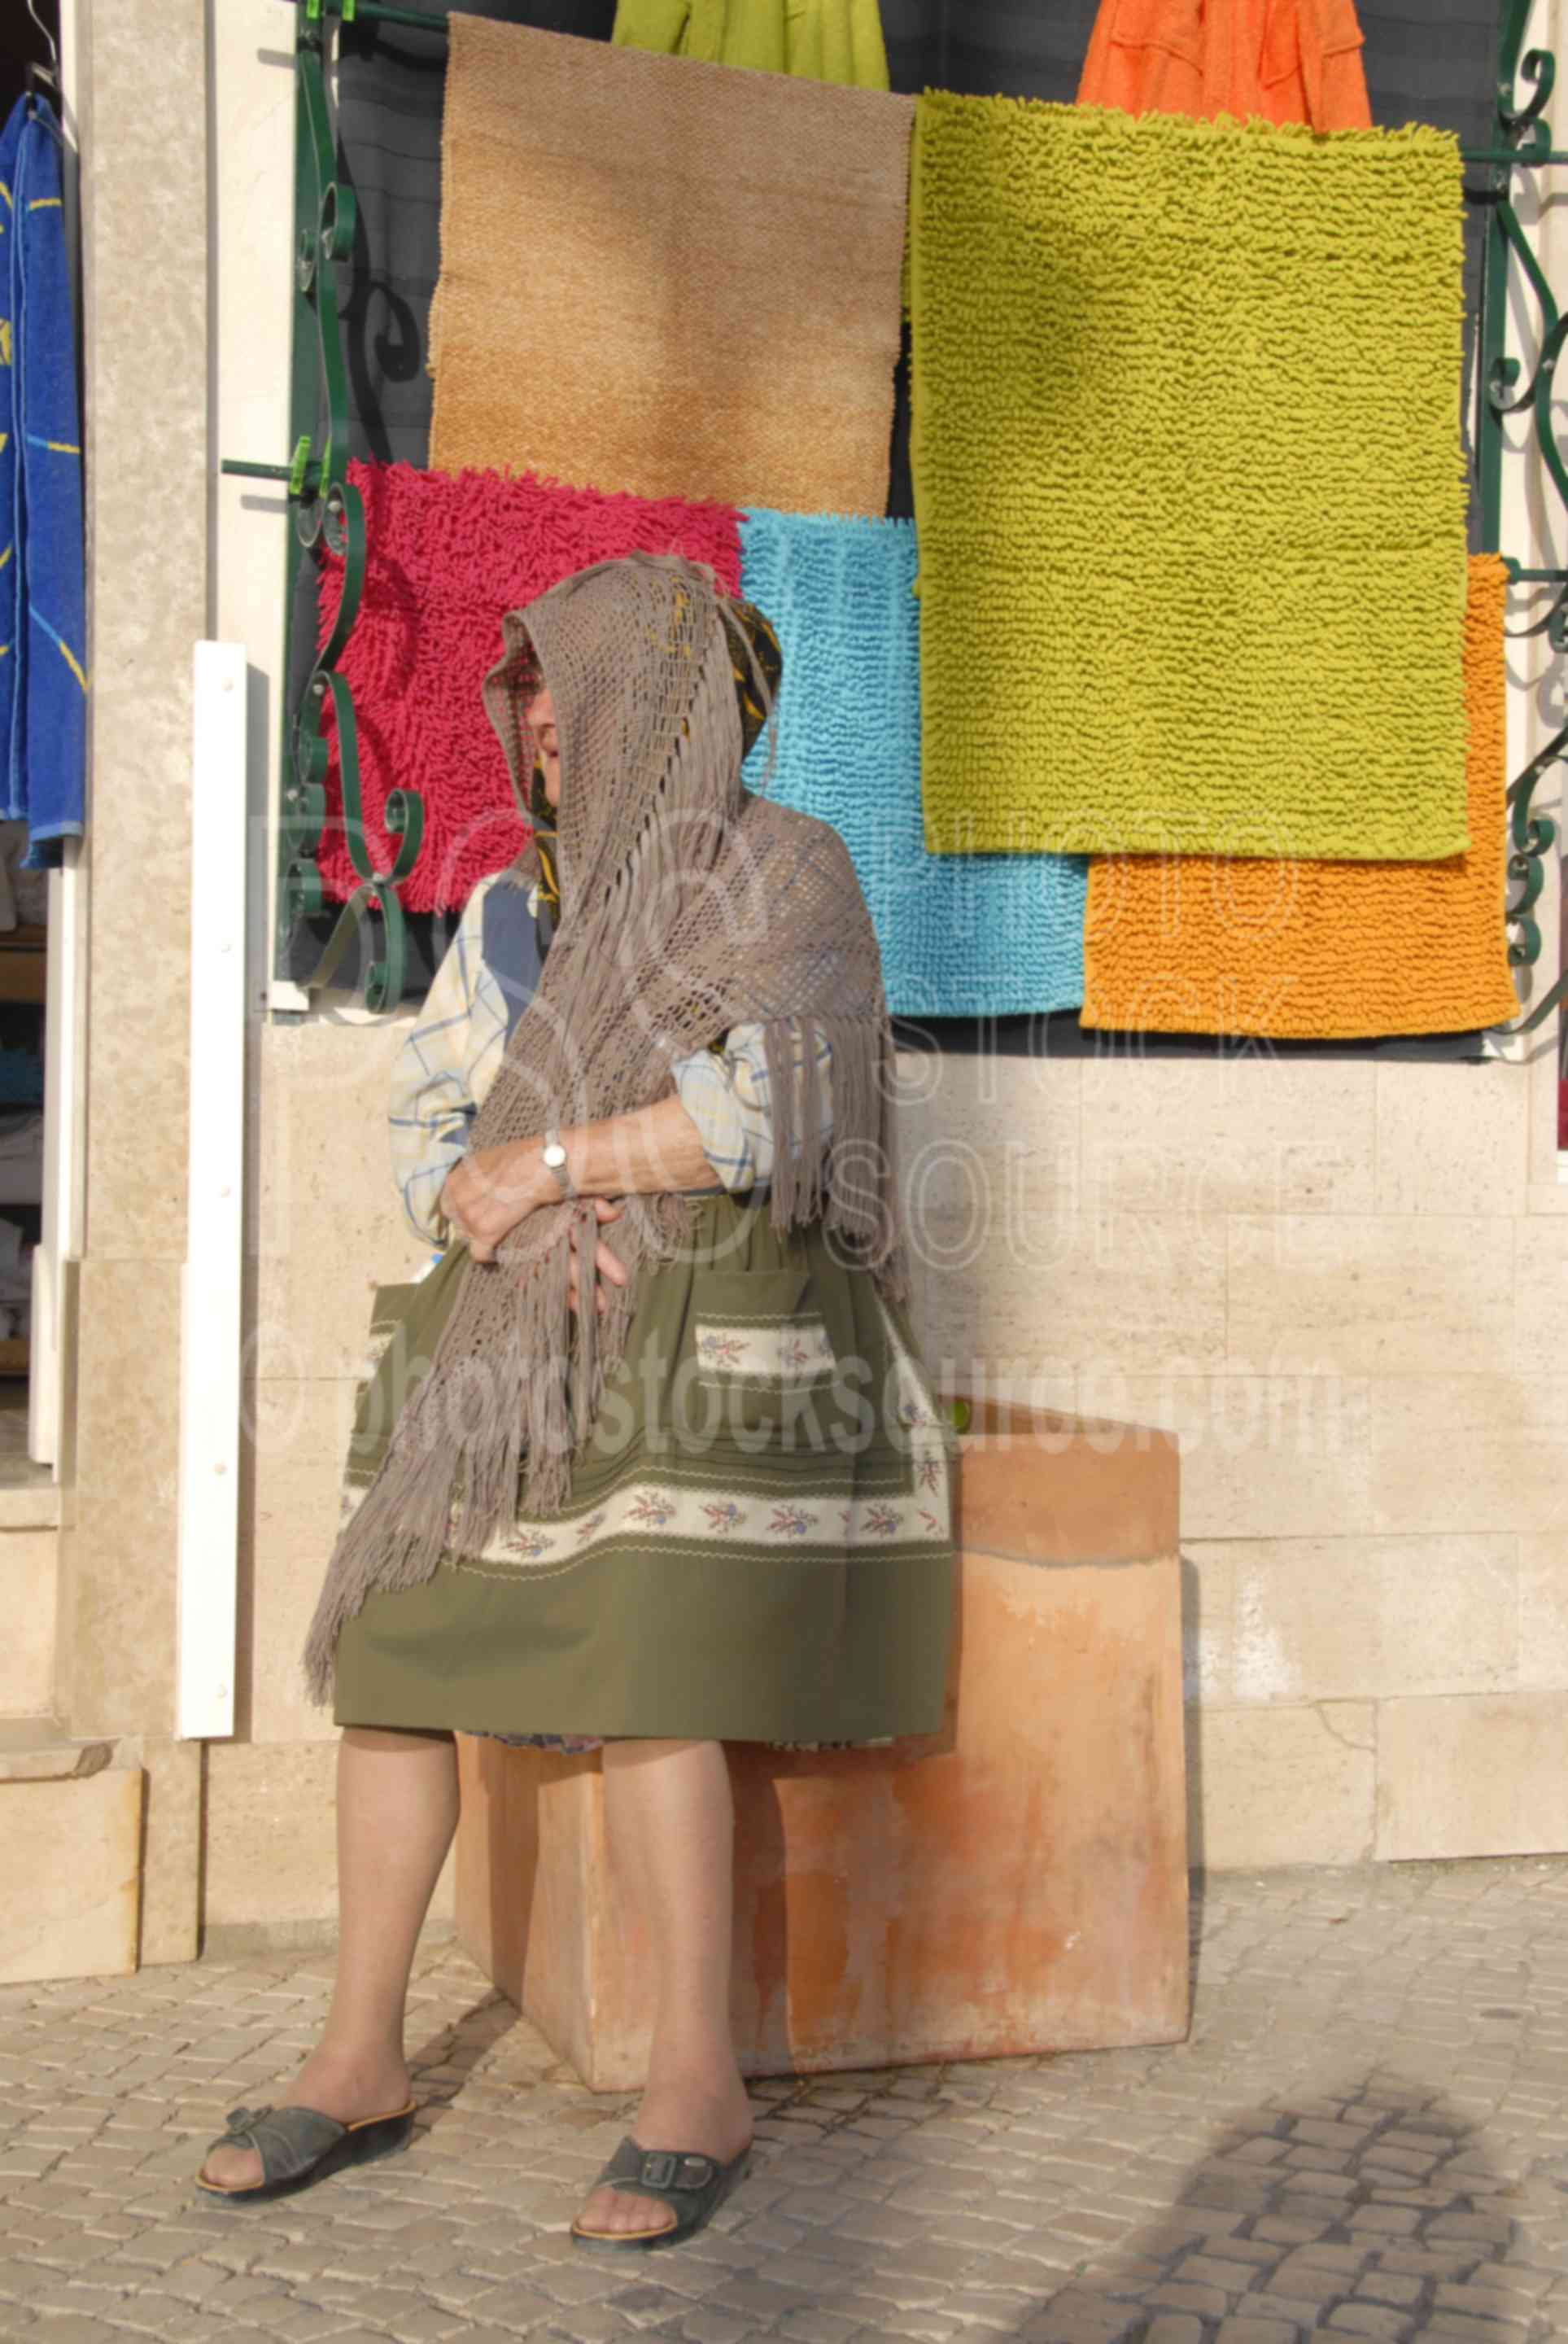 Lady Selling Knitted Shawls,lady,knit